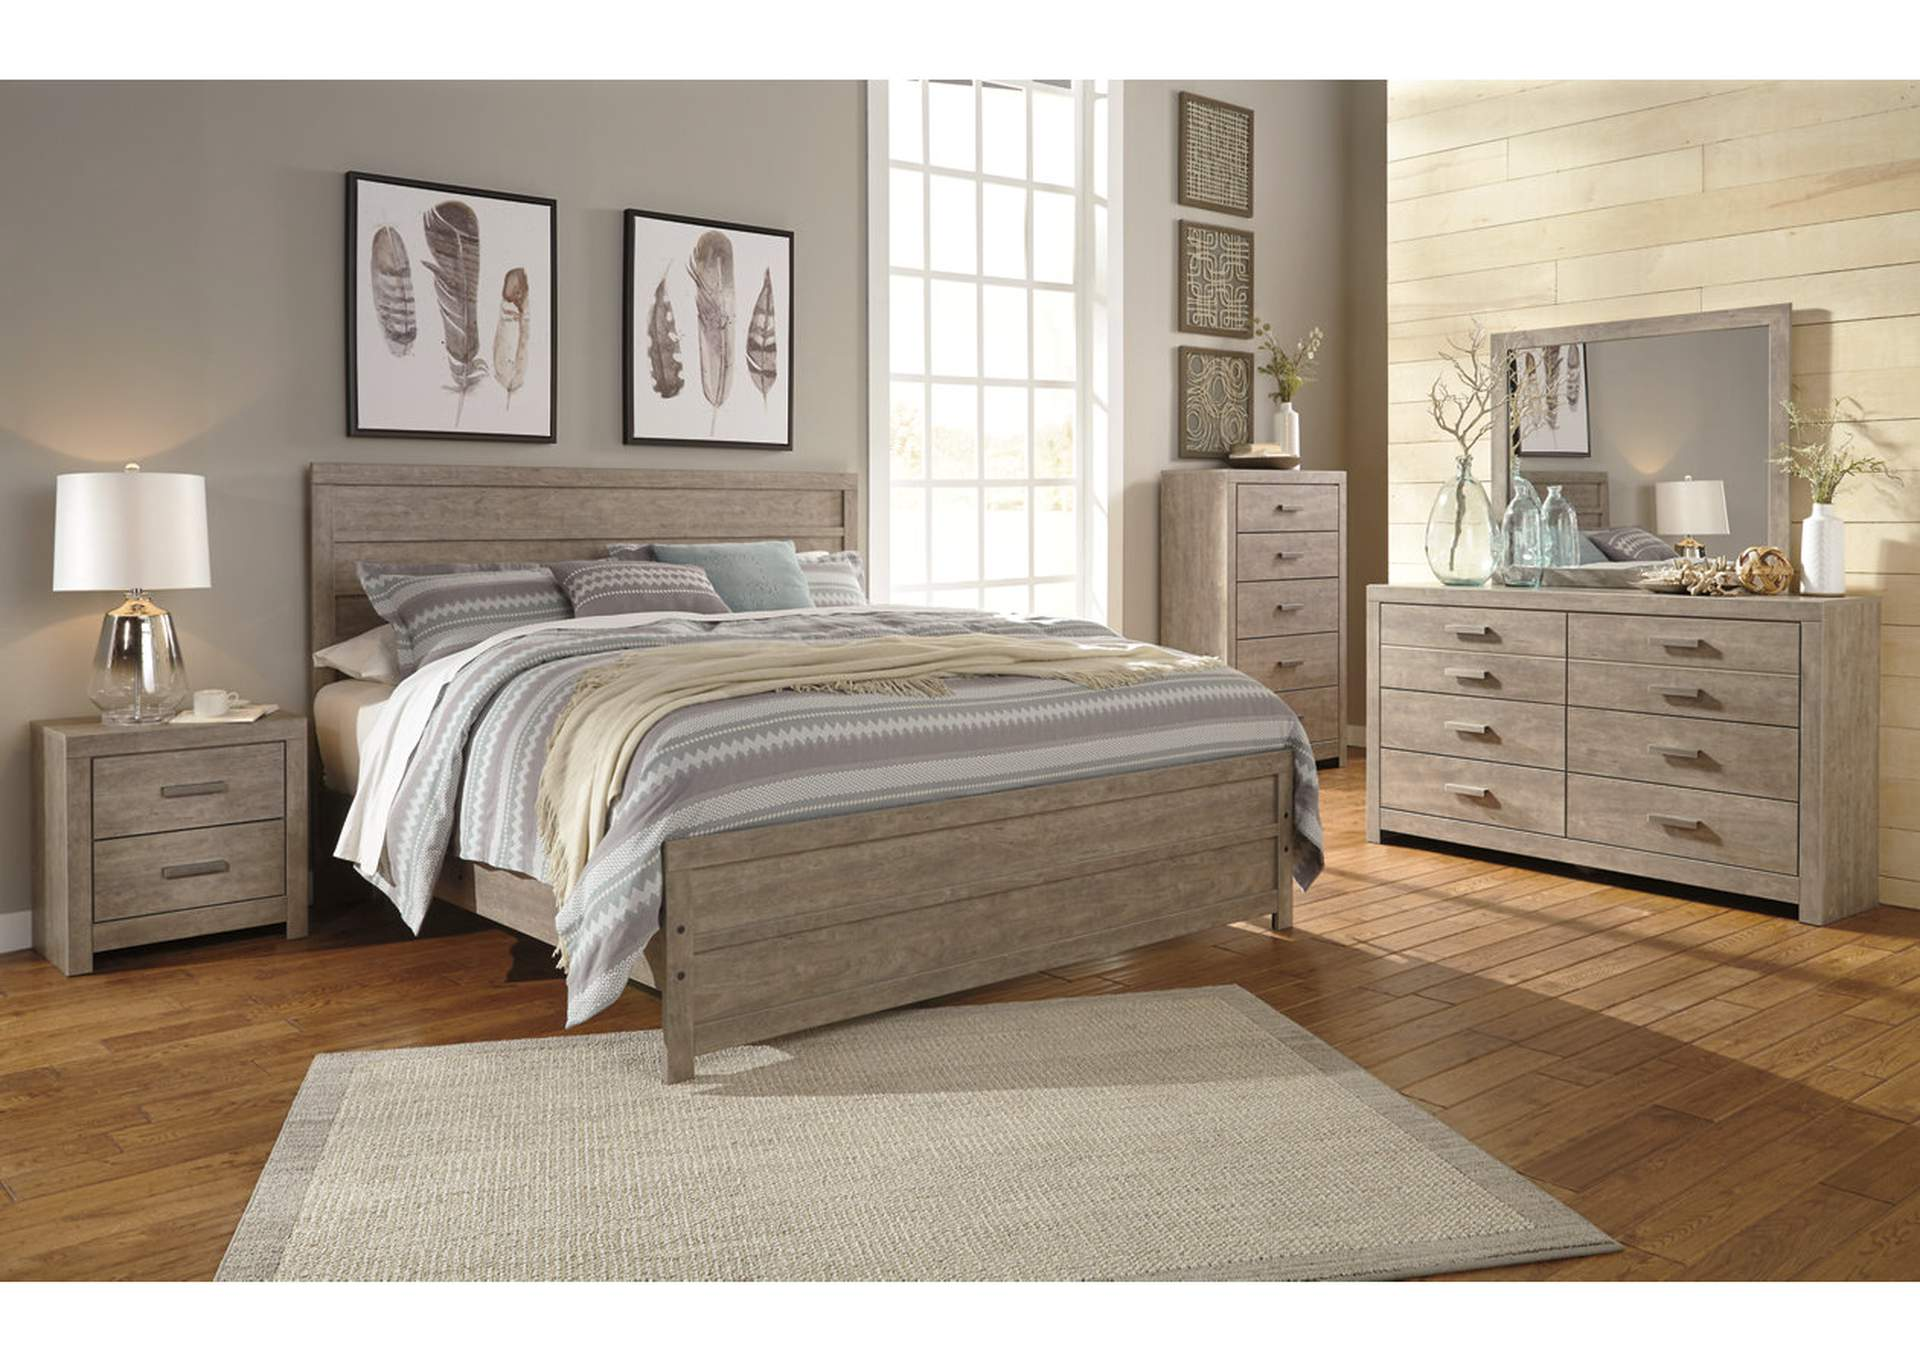 Culverbach Gray King Panel Bed w/Dresser, Mirror & Drawer Chest,Signature Design By Ashley